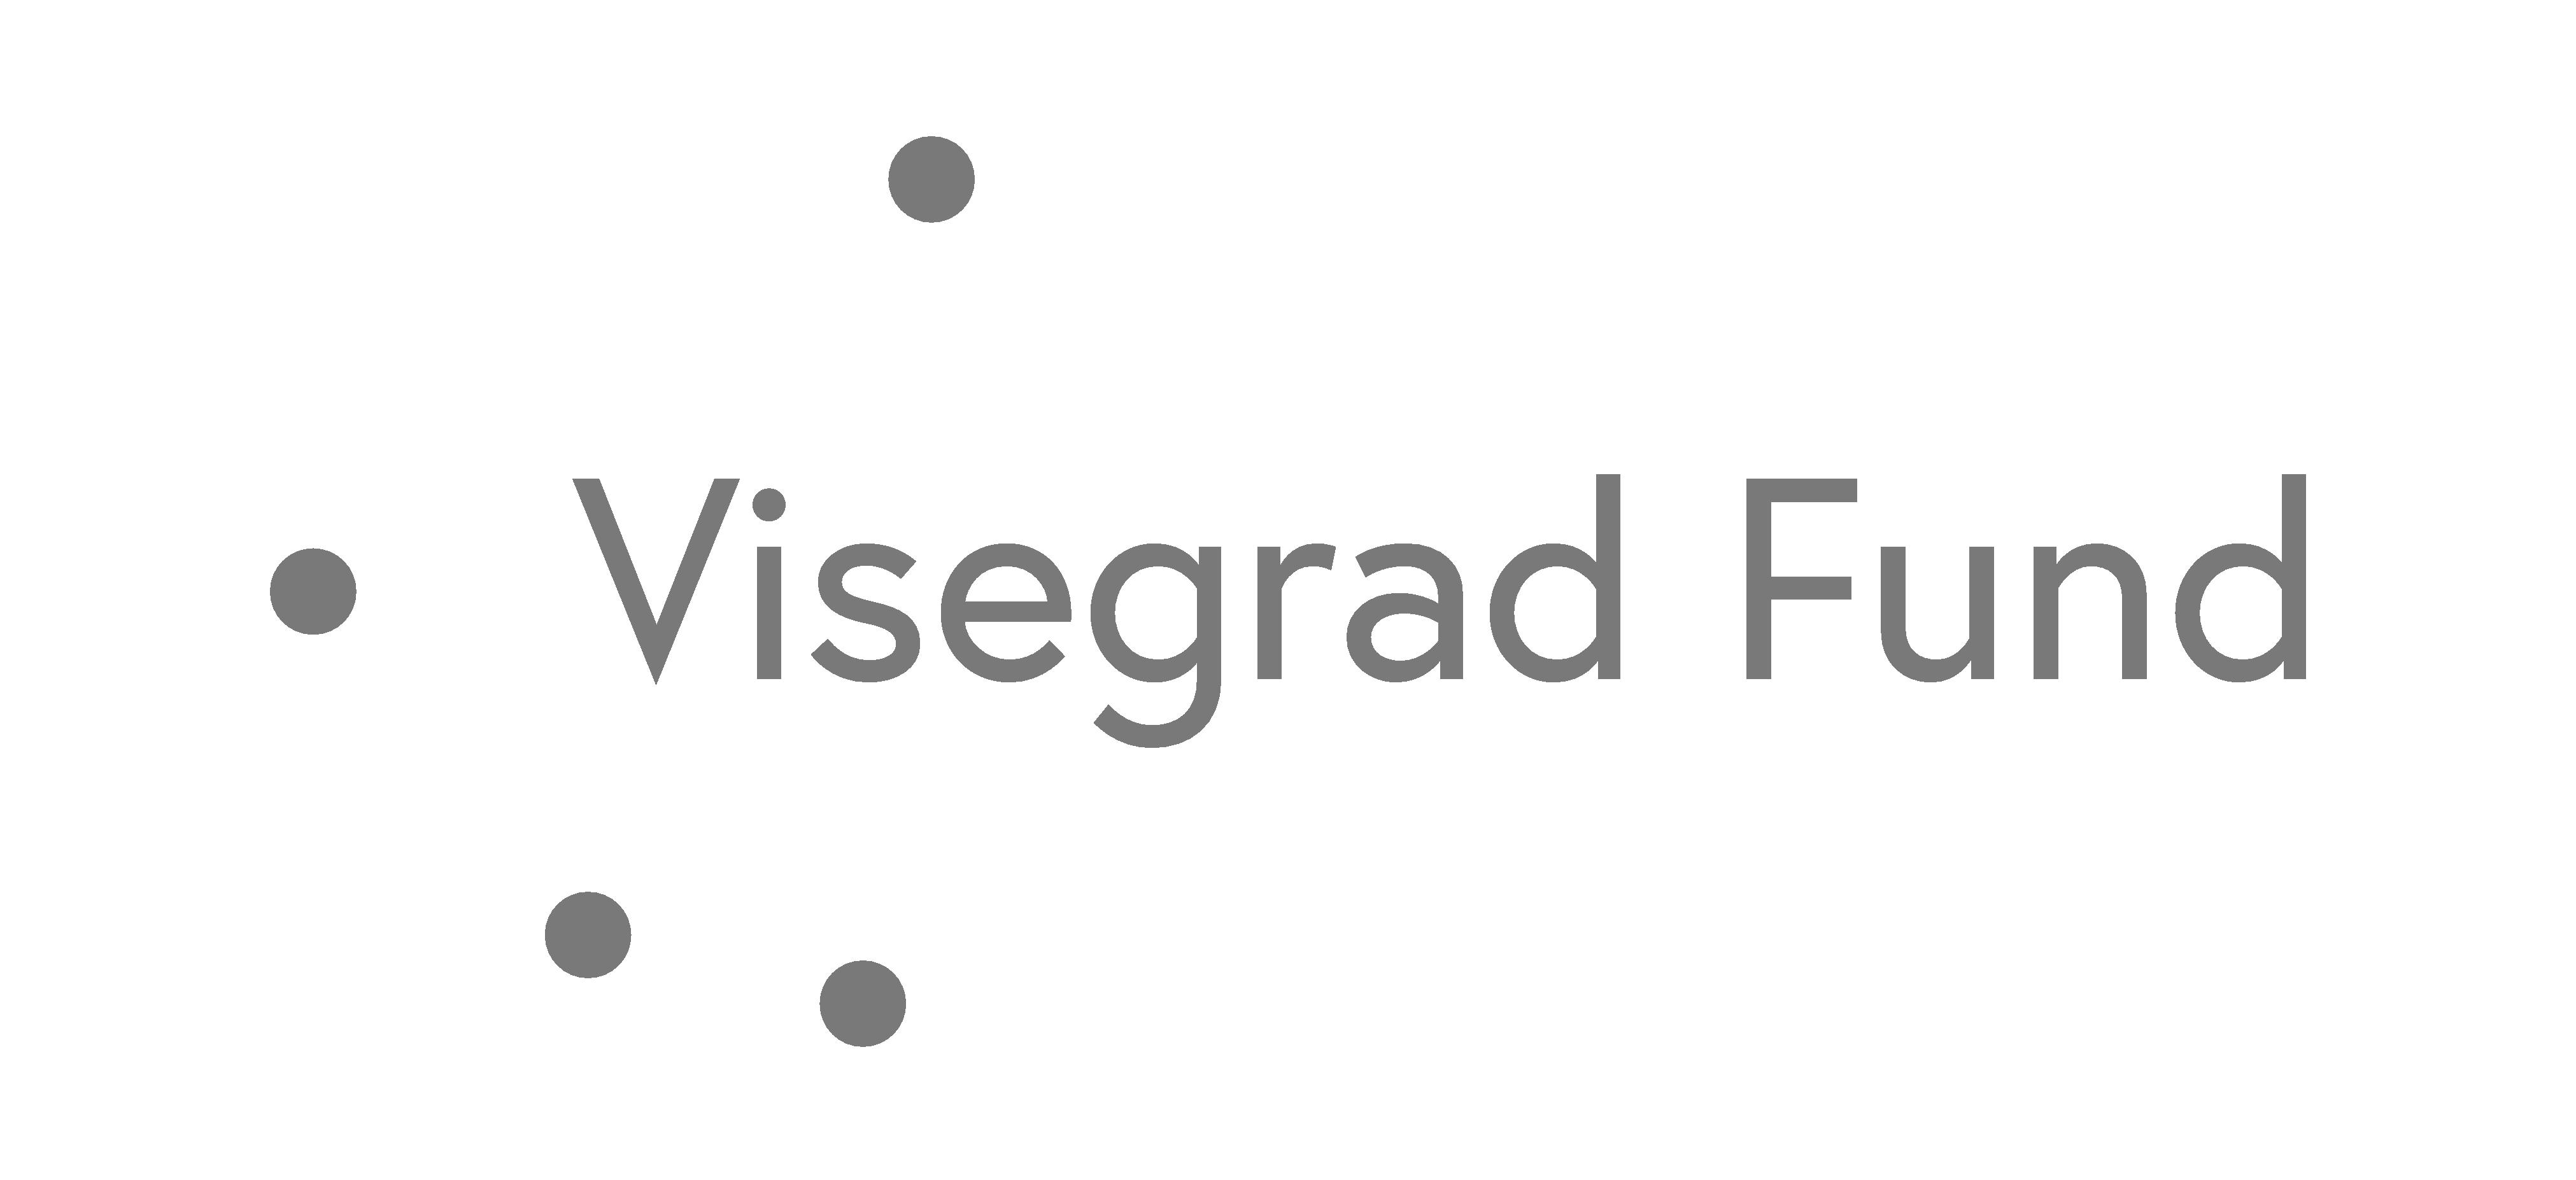 visegrad_fund_logo_grey